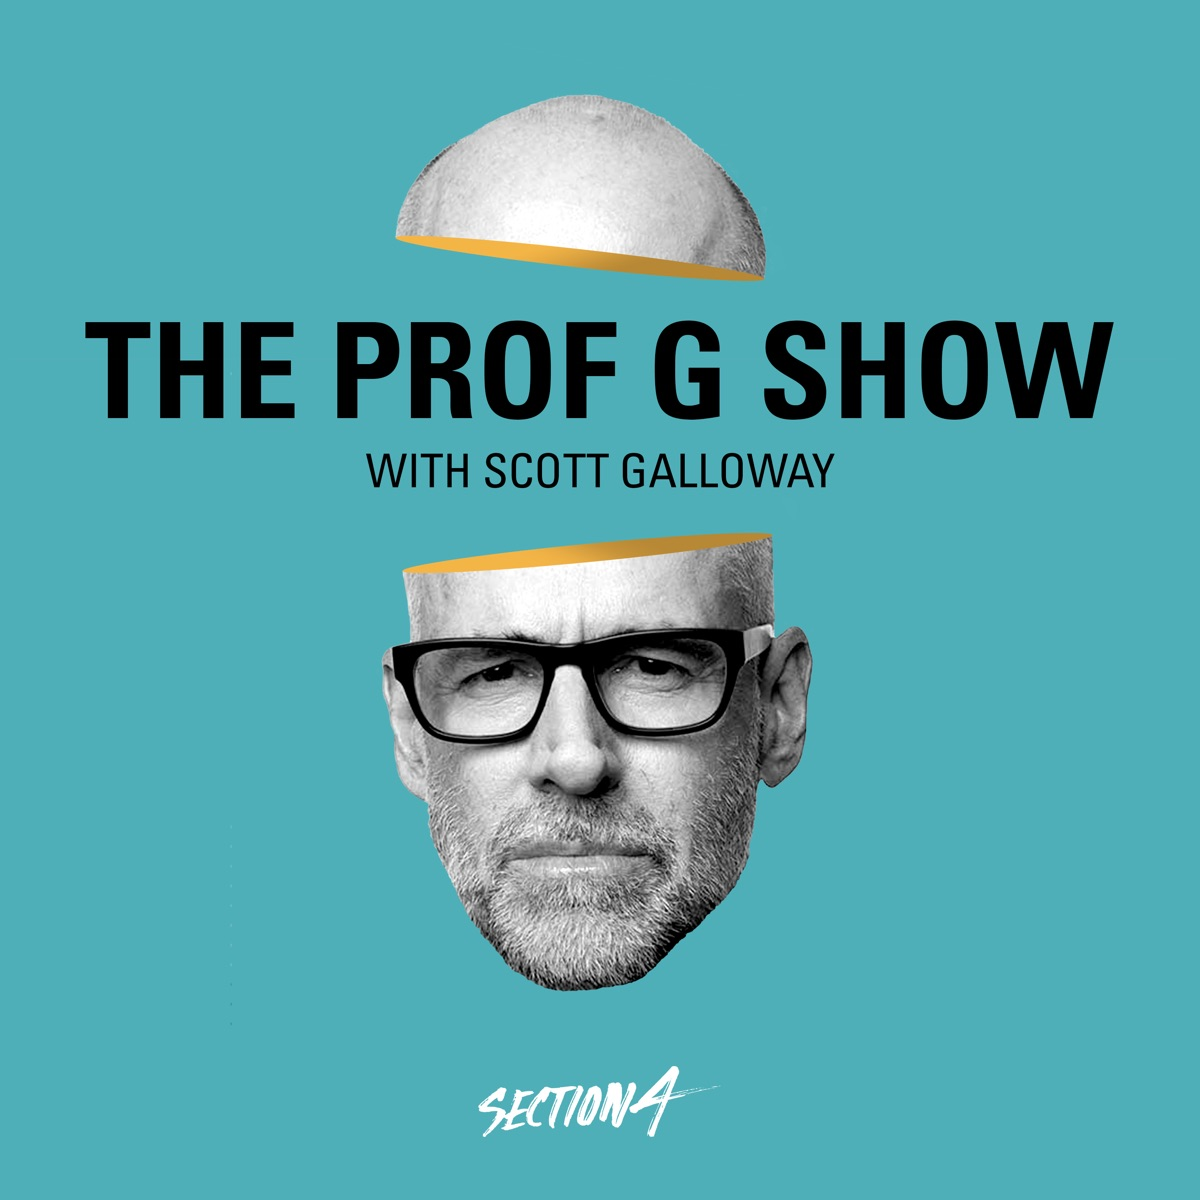 Catch me on this week's episode of The Prof G Show